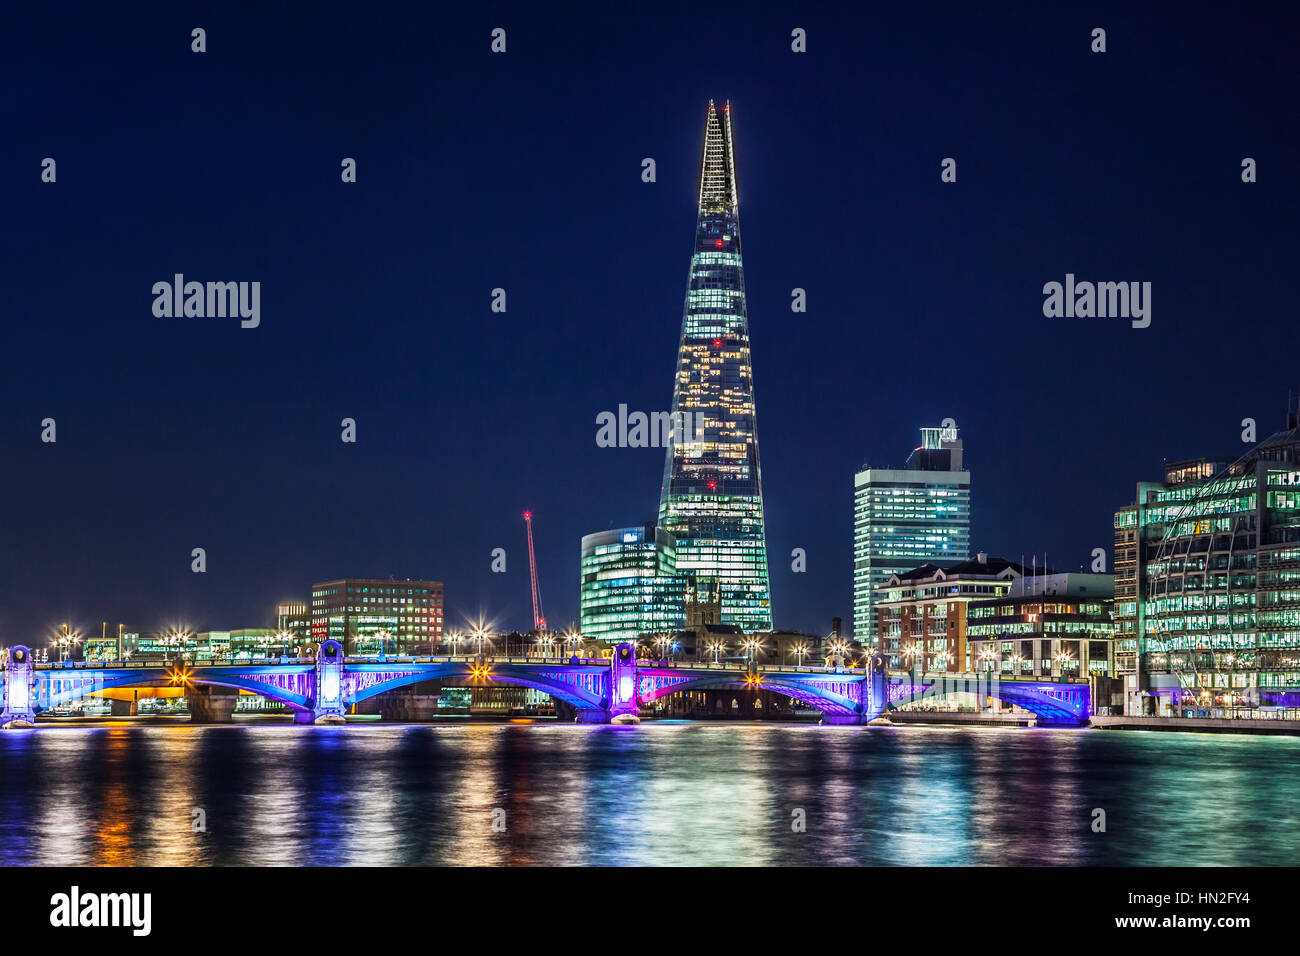 View of the river Thames towards Southwark Bridge and the Shard at night. - Stock Image